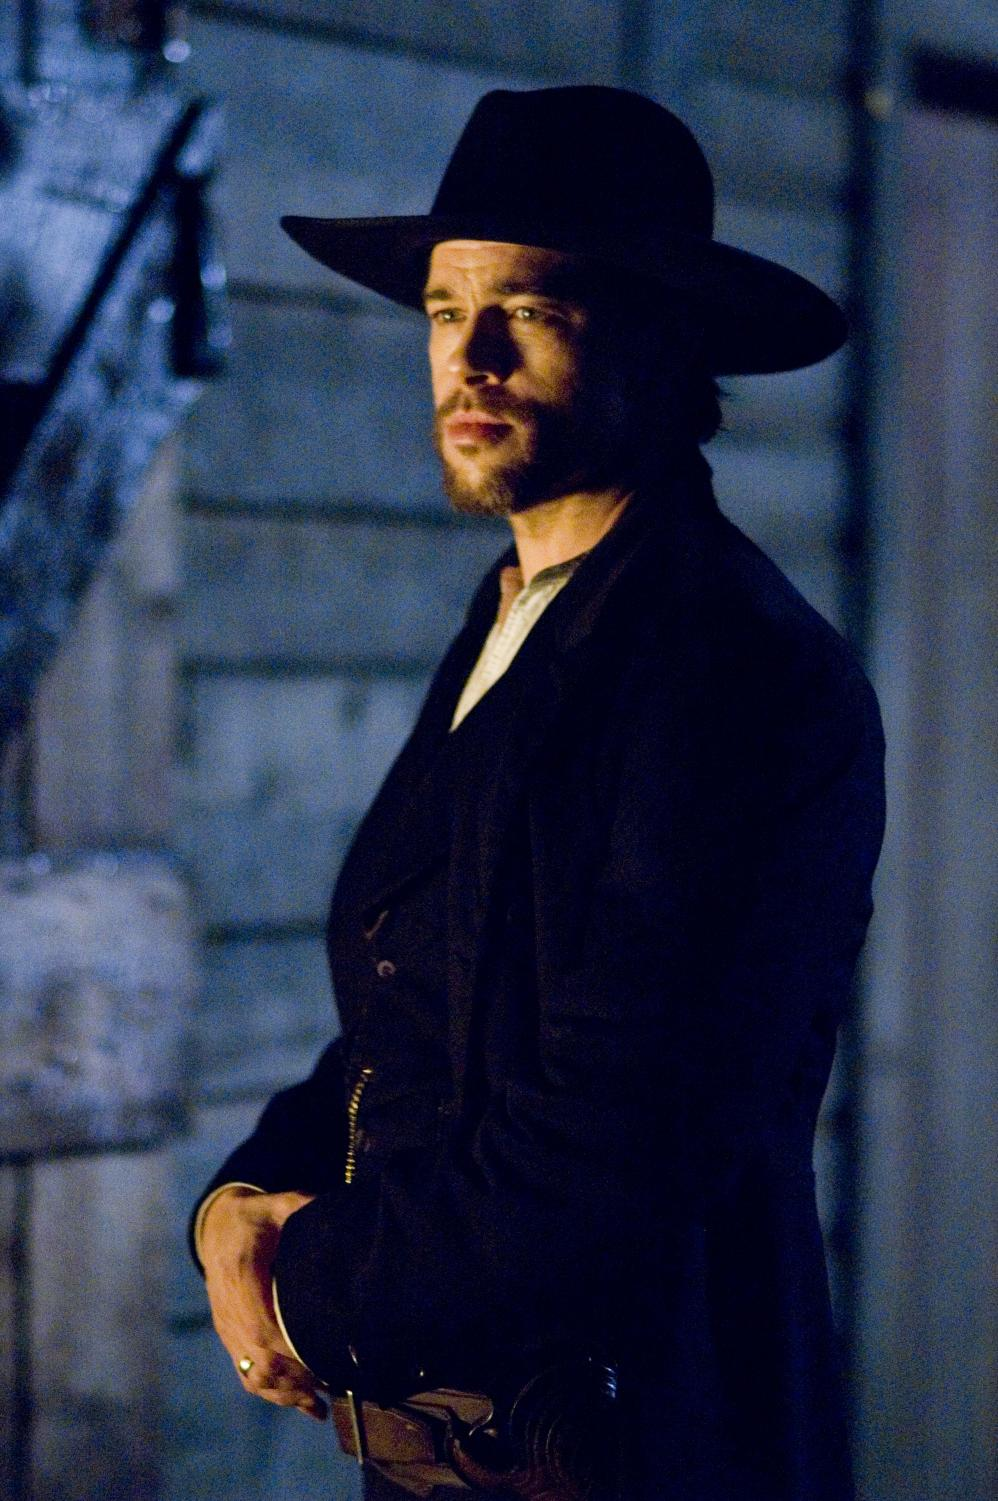 """Brad Pitt stars as the deadly outlaw Jesse James in """"The Assassination of Jesse James by the Coward Robert Ford,"""" playing in theaters now."""